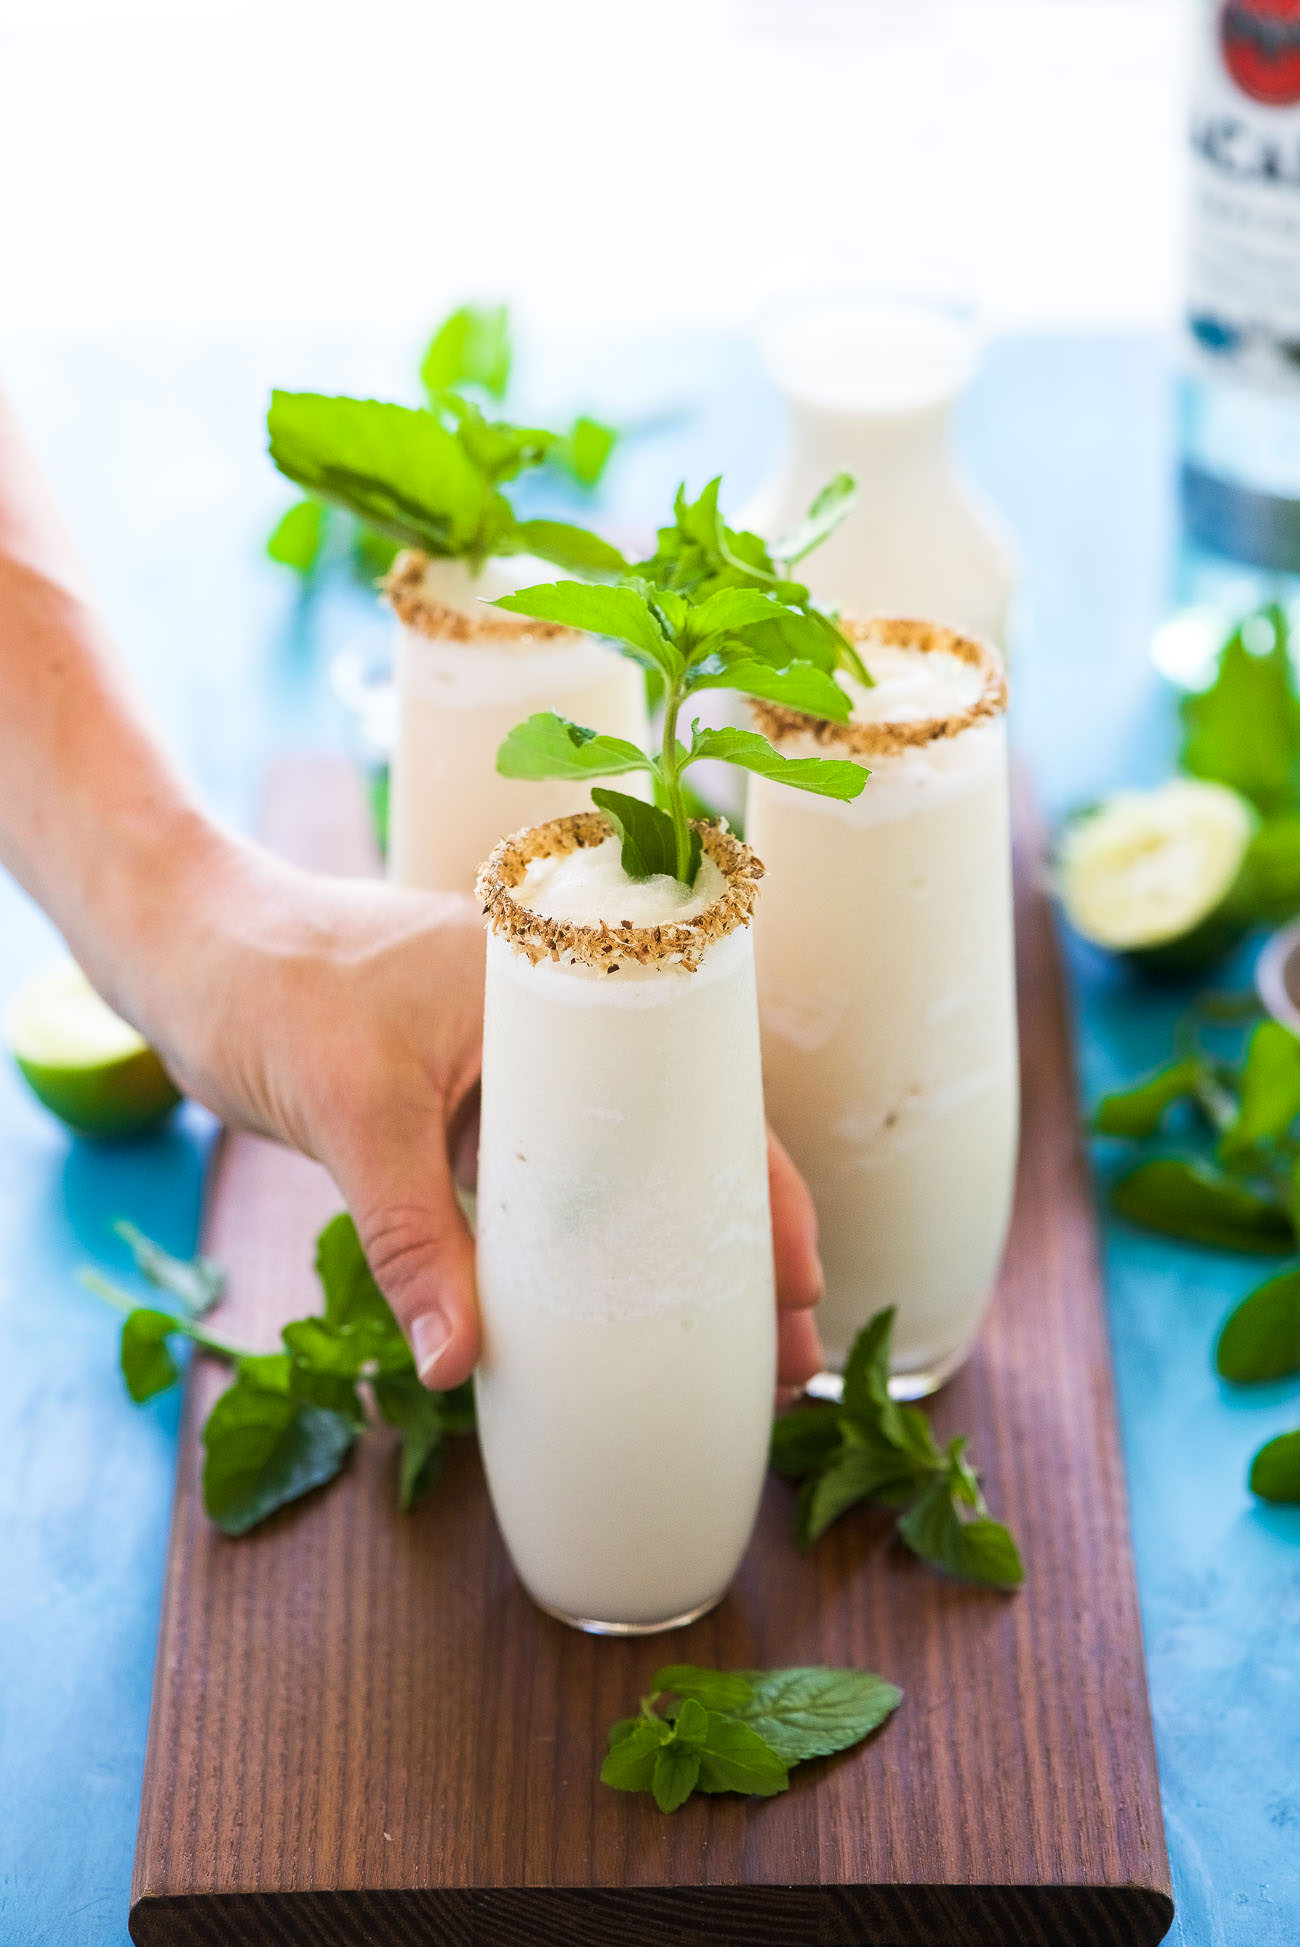 This Toasted Frozen Coconut Mojito is a summer must have! Made lighter with fresh lime juice, a mint simple syrup, and then blended with coconut milk for a refreshing cocktail that you won't have trouble asking for seconds!